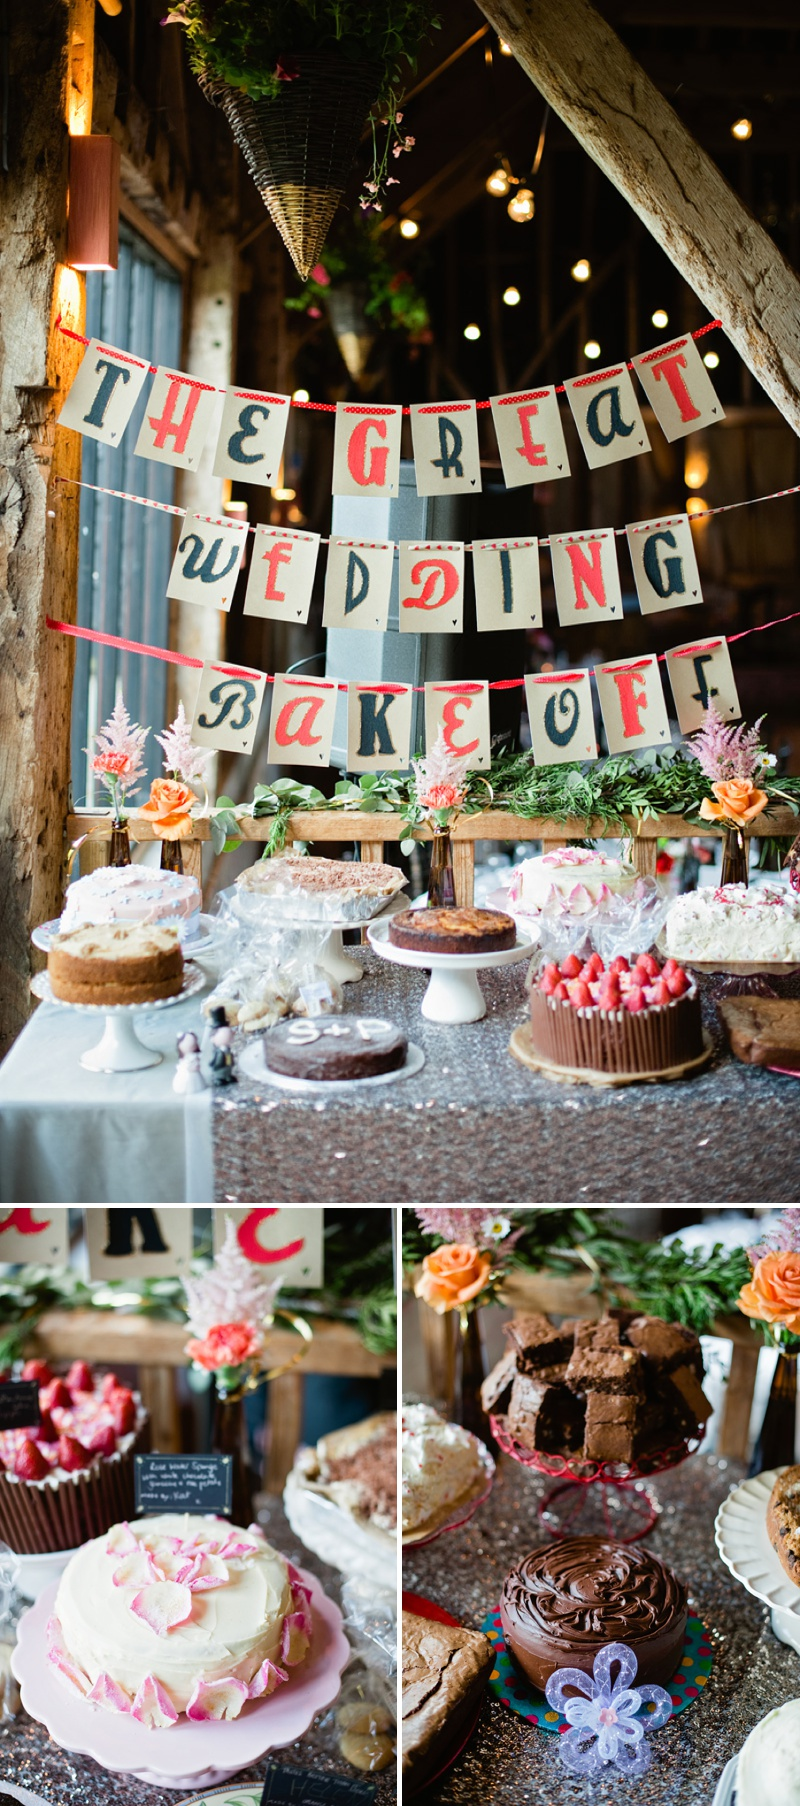 DIY Wedding Dessert Table Cake Competition Bakeoff